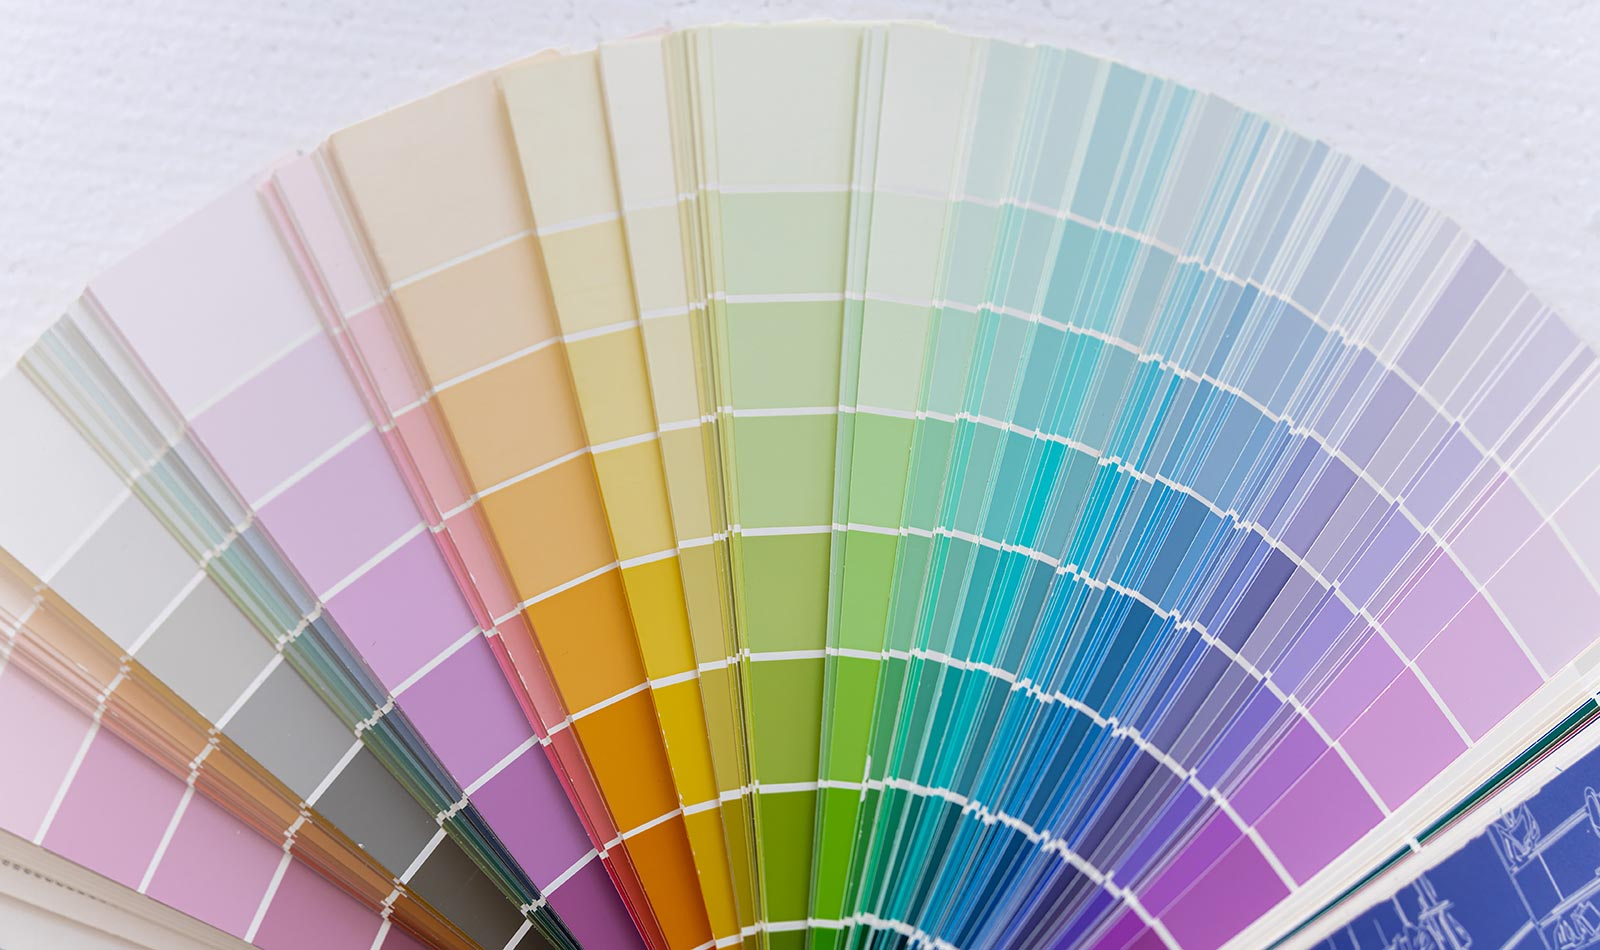 Evaluation of the Colour Combination Trademarks in the Trademark Examination Guideline